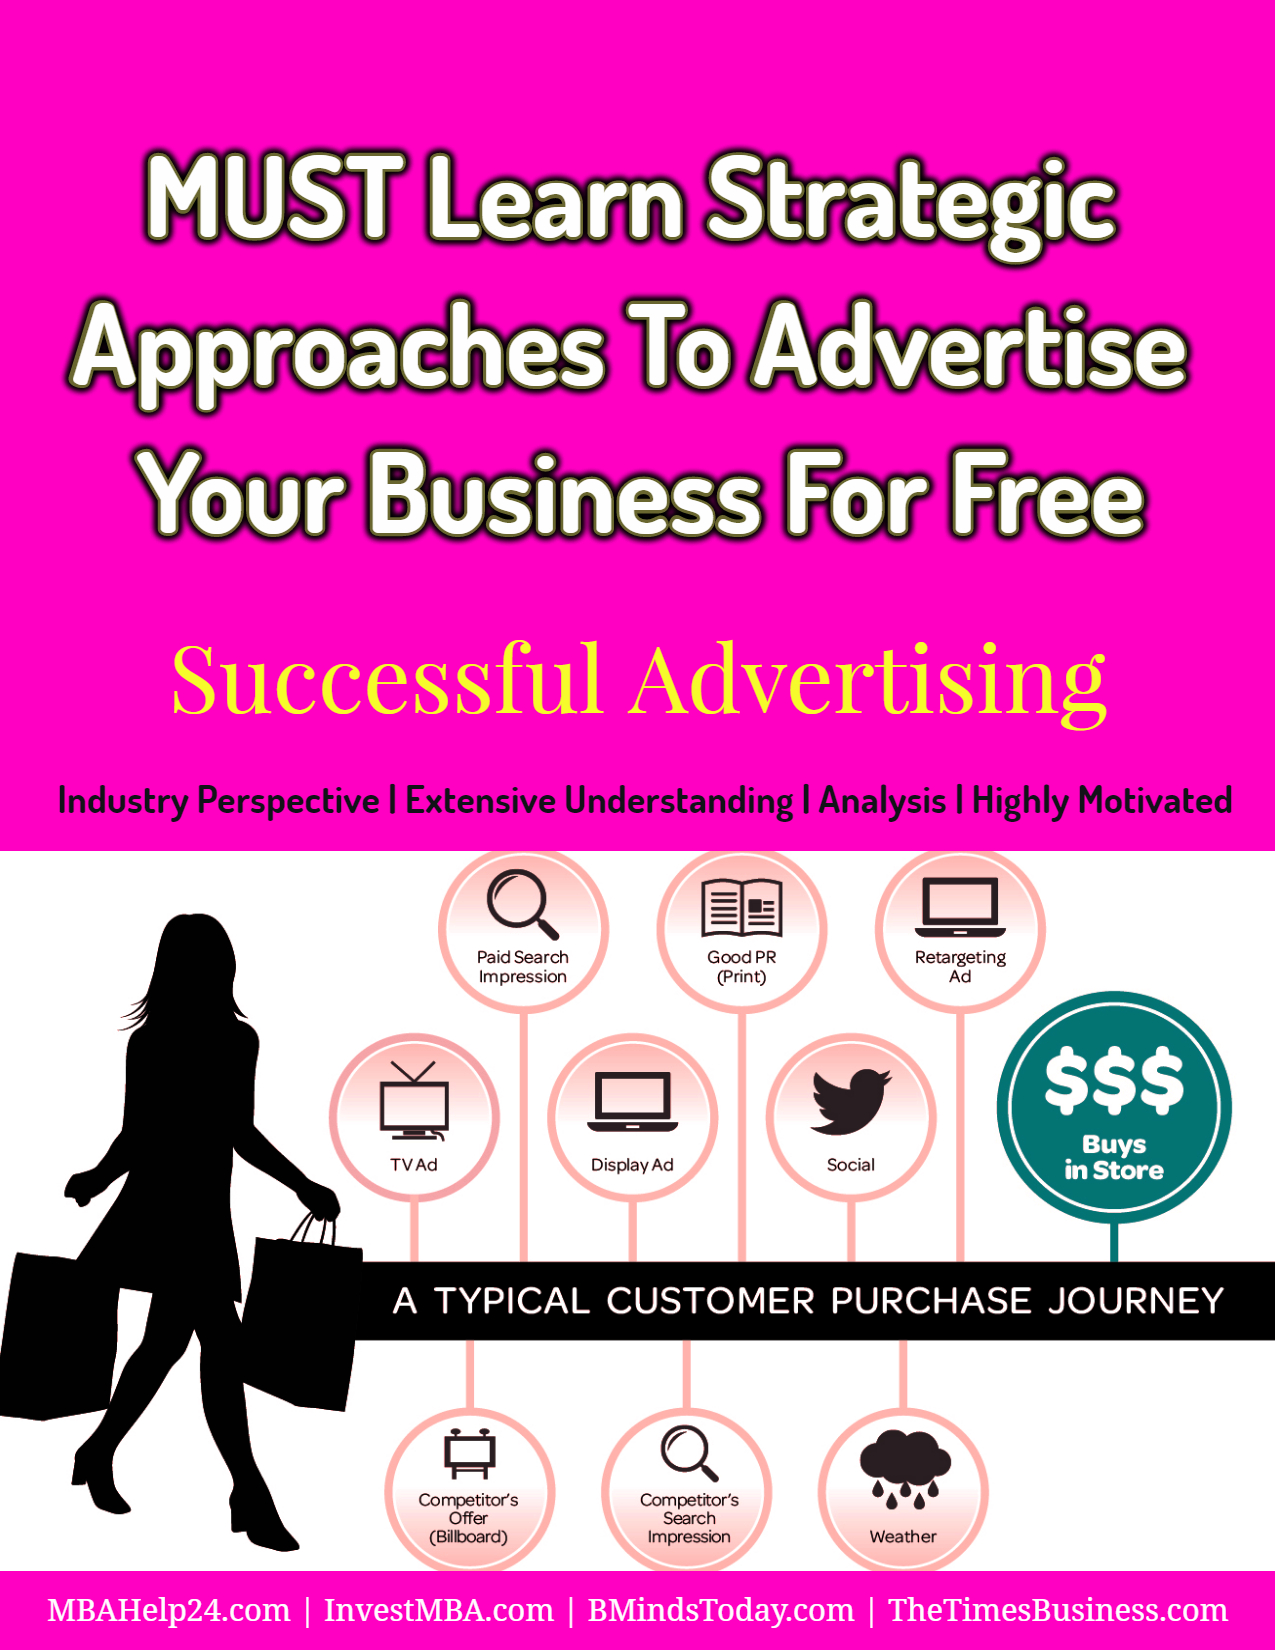 SEVEN Strategic Approaches To Advertise Your Business For Free | Successful Advertising advertising MUST Learn Strategic Approaches To Advertise Your Business For Free SEVEN Strategic Approaches To Advertise Your Business For Free Successful Advertising